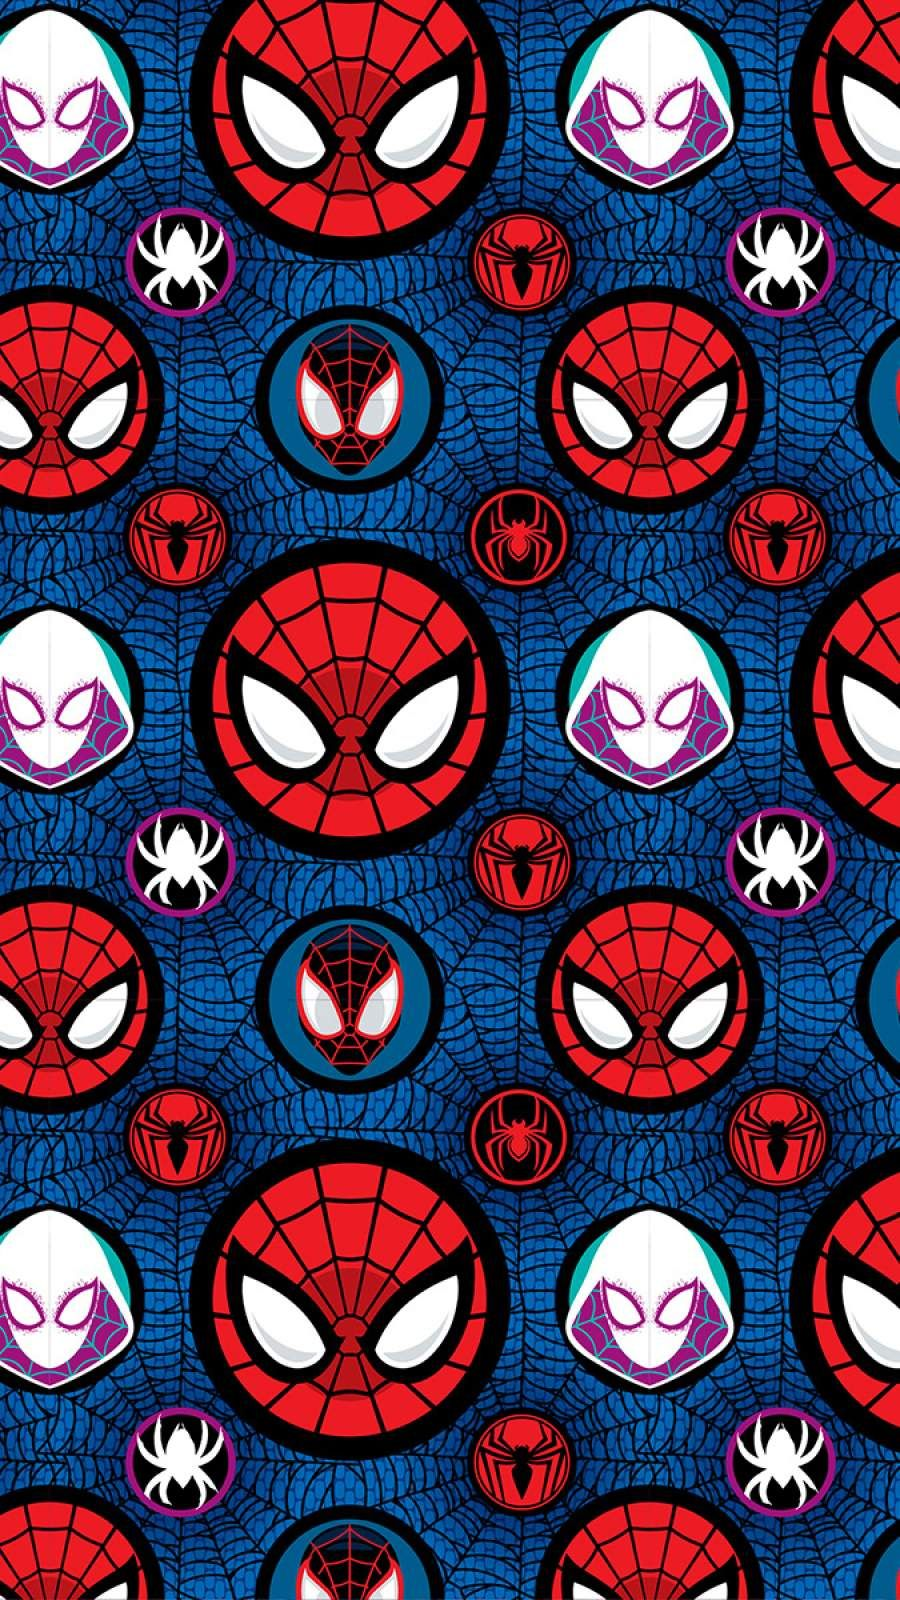 Iphone Wallpapers For Iphone 12 Iphone 11 Iphone X Iphone Xr Iphone 8 Plus High Quality Wall In 2020 Marvel Comics Wallpaper Avengers Wallpaper Superhero Wallpaper